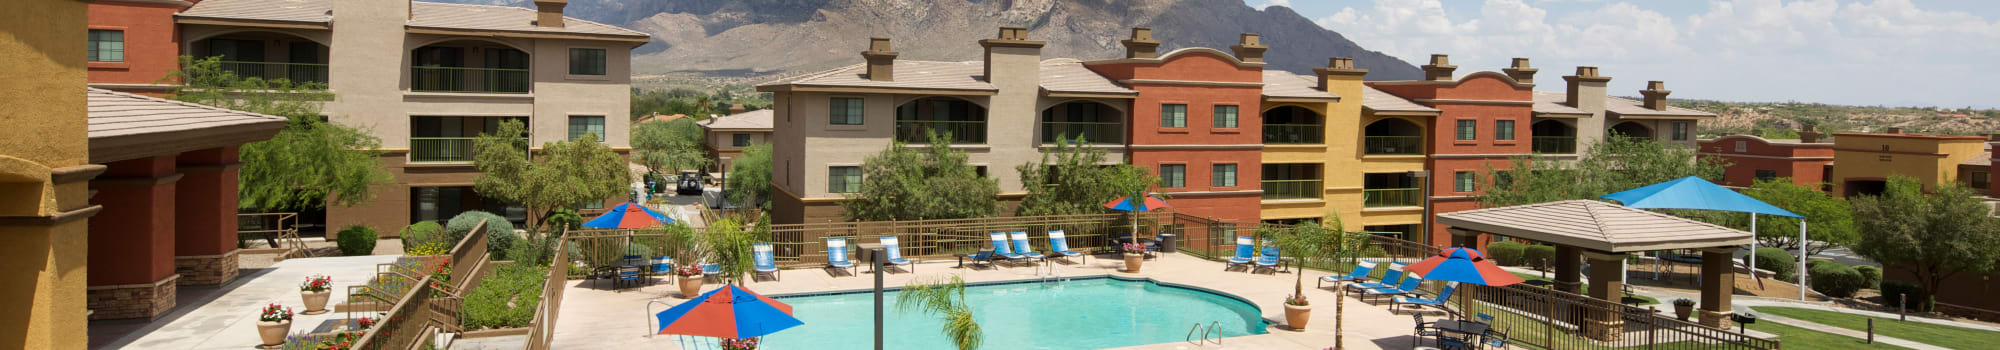 Pets are welcome at Oro Vista Apartments in Oro Valley, AZ